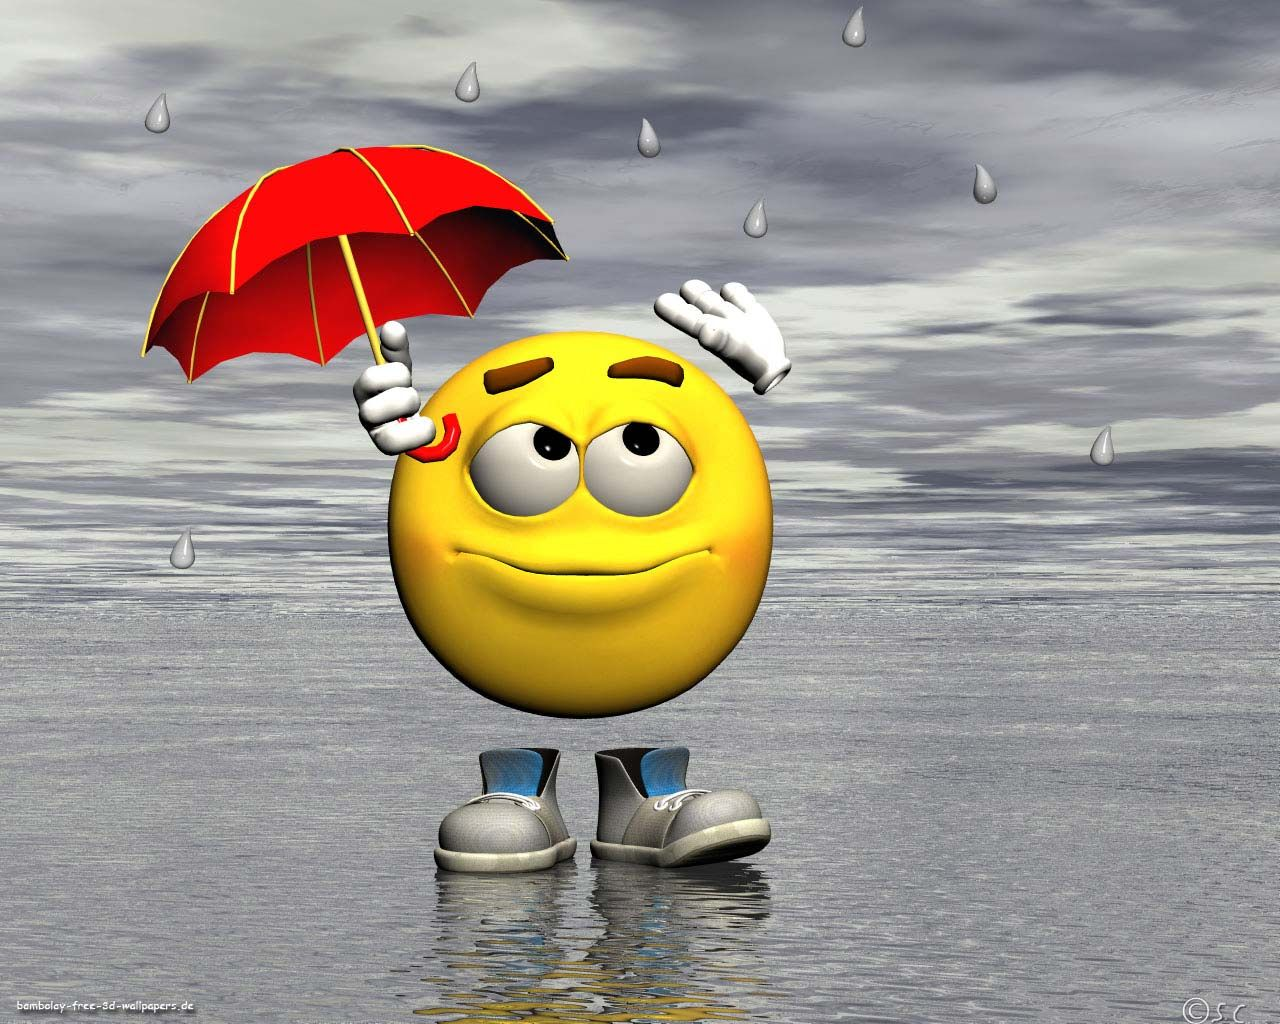 you can download 3d smiley face hd images here. 3d smiley face hd